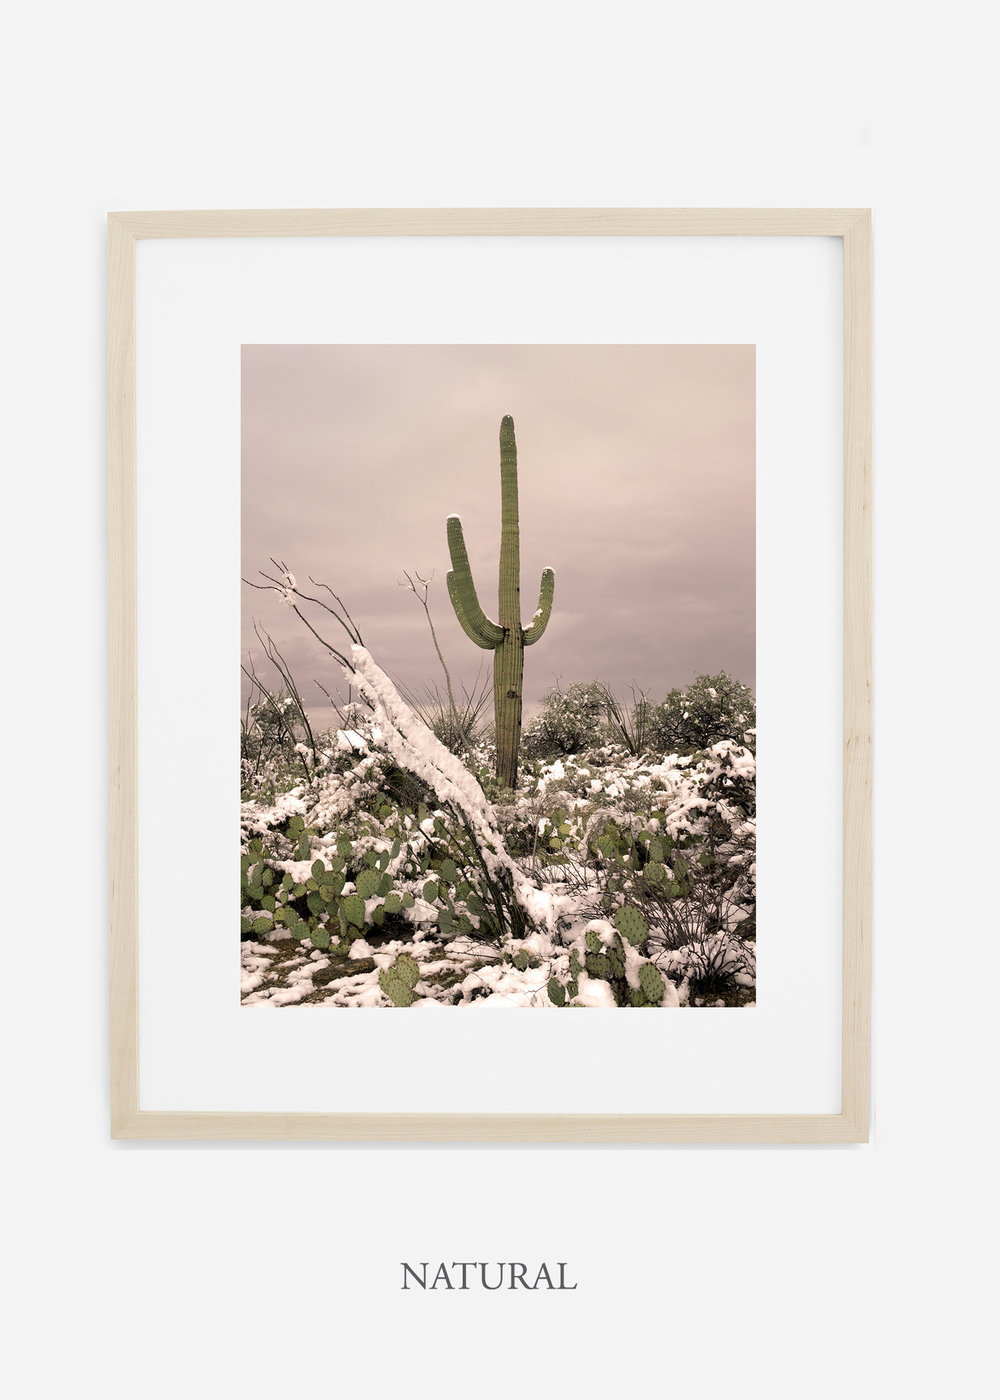 naturalframe-saguaroNo.4-wildercalifornia-art-wallart-cactusprint-homedecor-prints-arizona-botanical-artwork-interiordesign.jpg